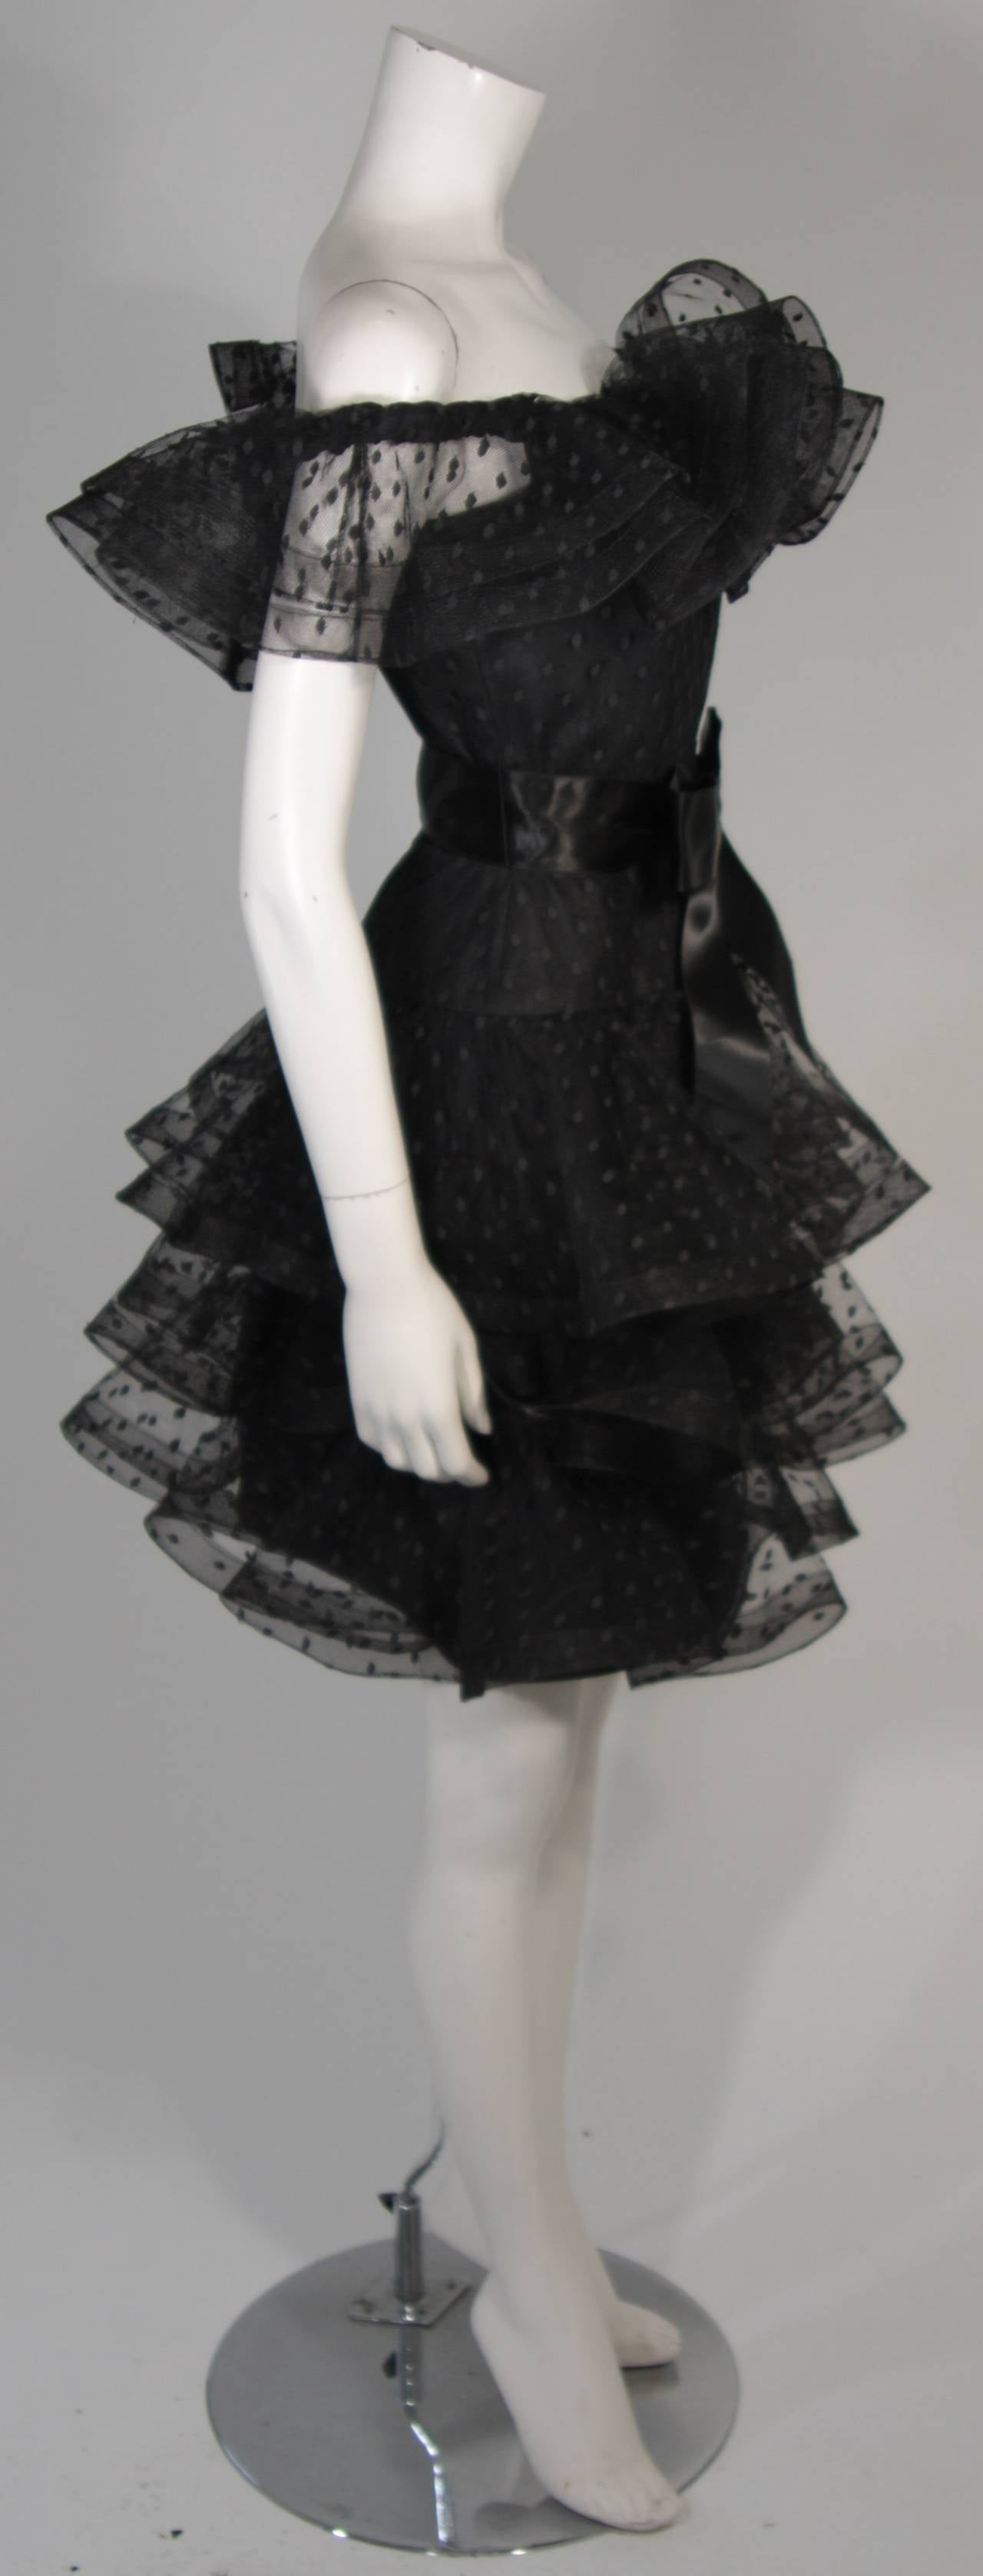 Victor Costa Black Cocktail Dress with Ruffled Horsehair Hemlines Size 2 6